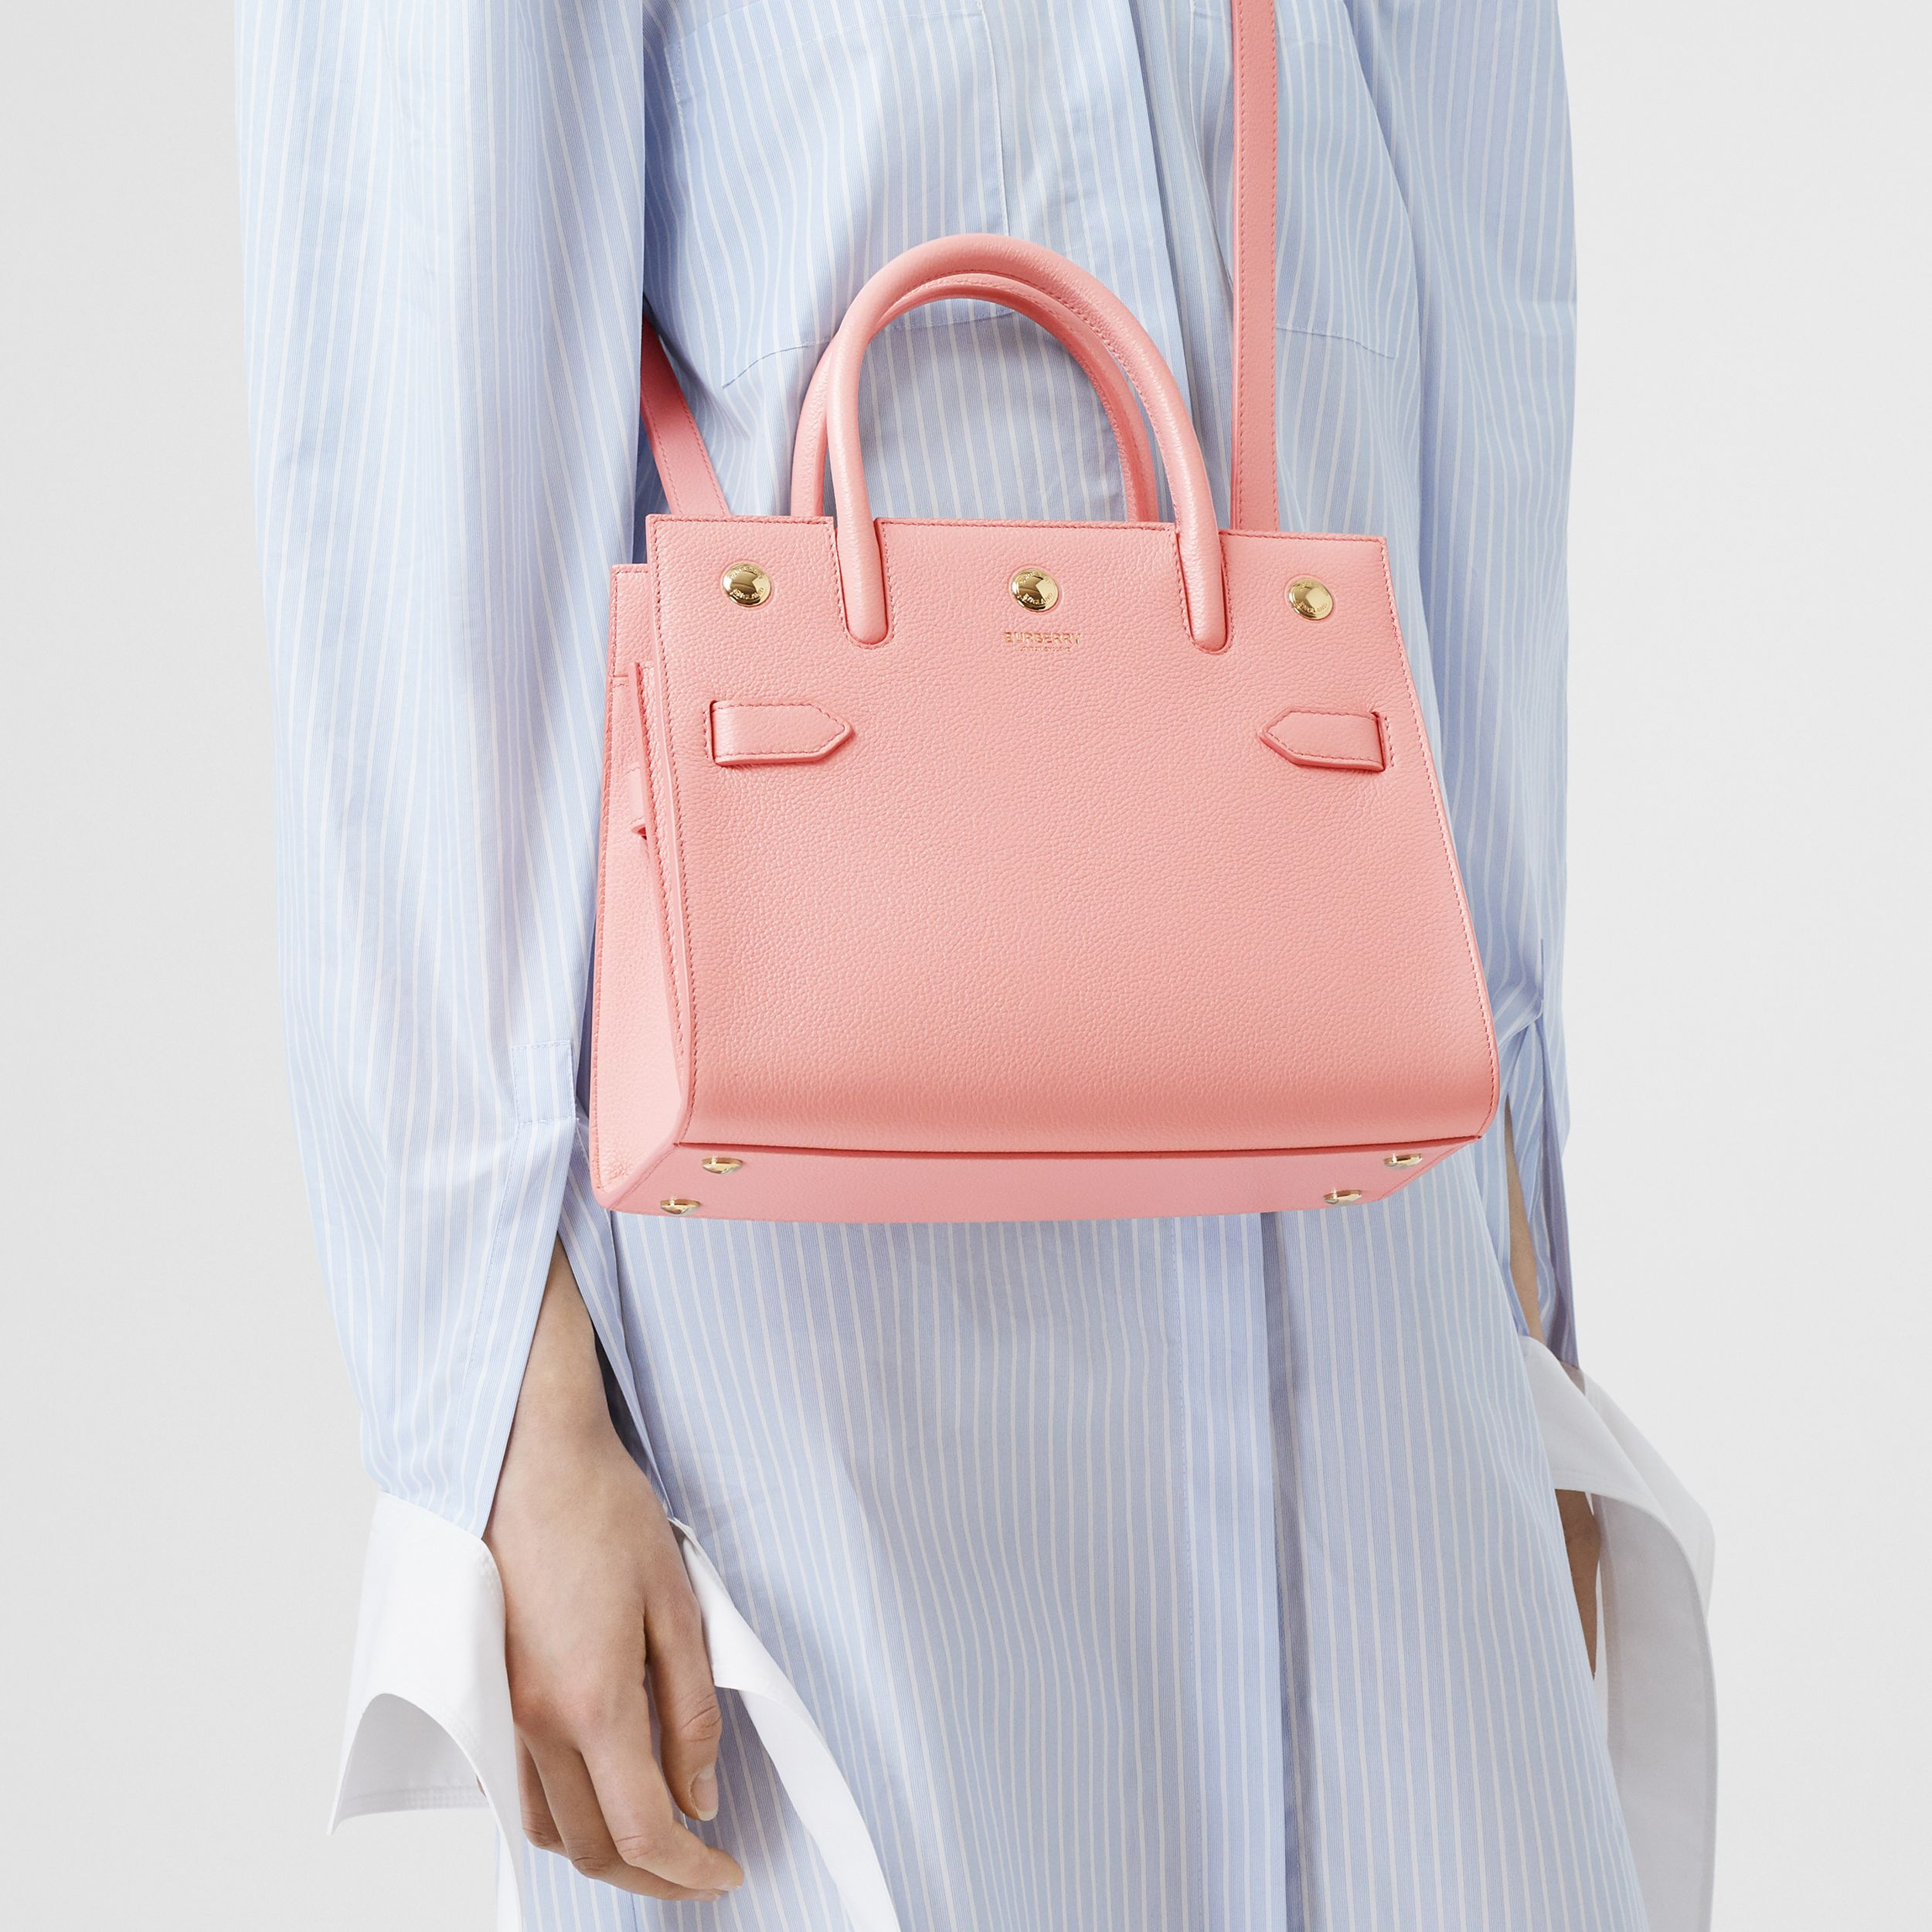 Mini Leather Two-handle Title Bag in Blush Pink - Women | Burberry - 3